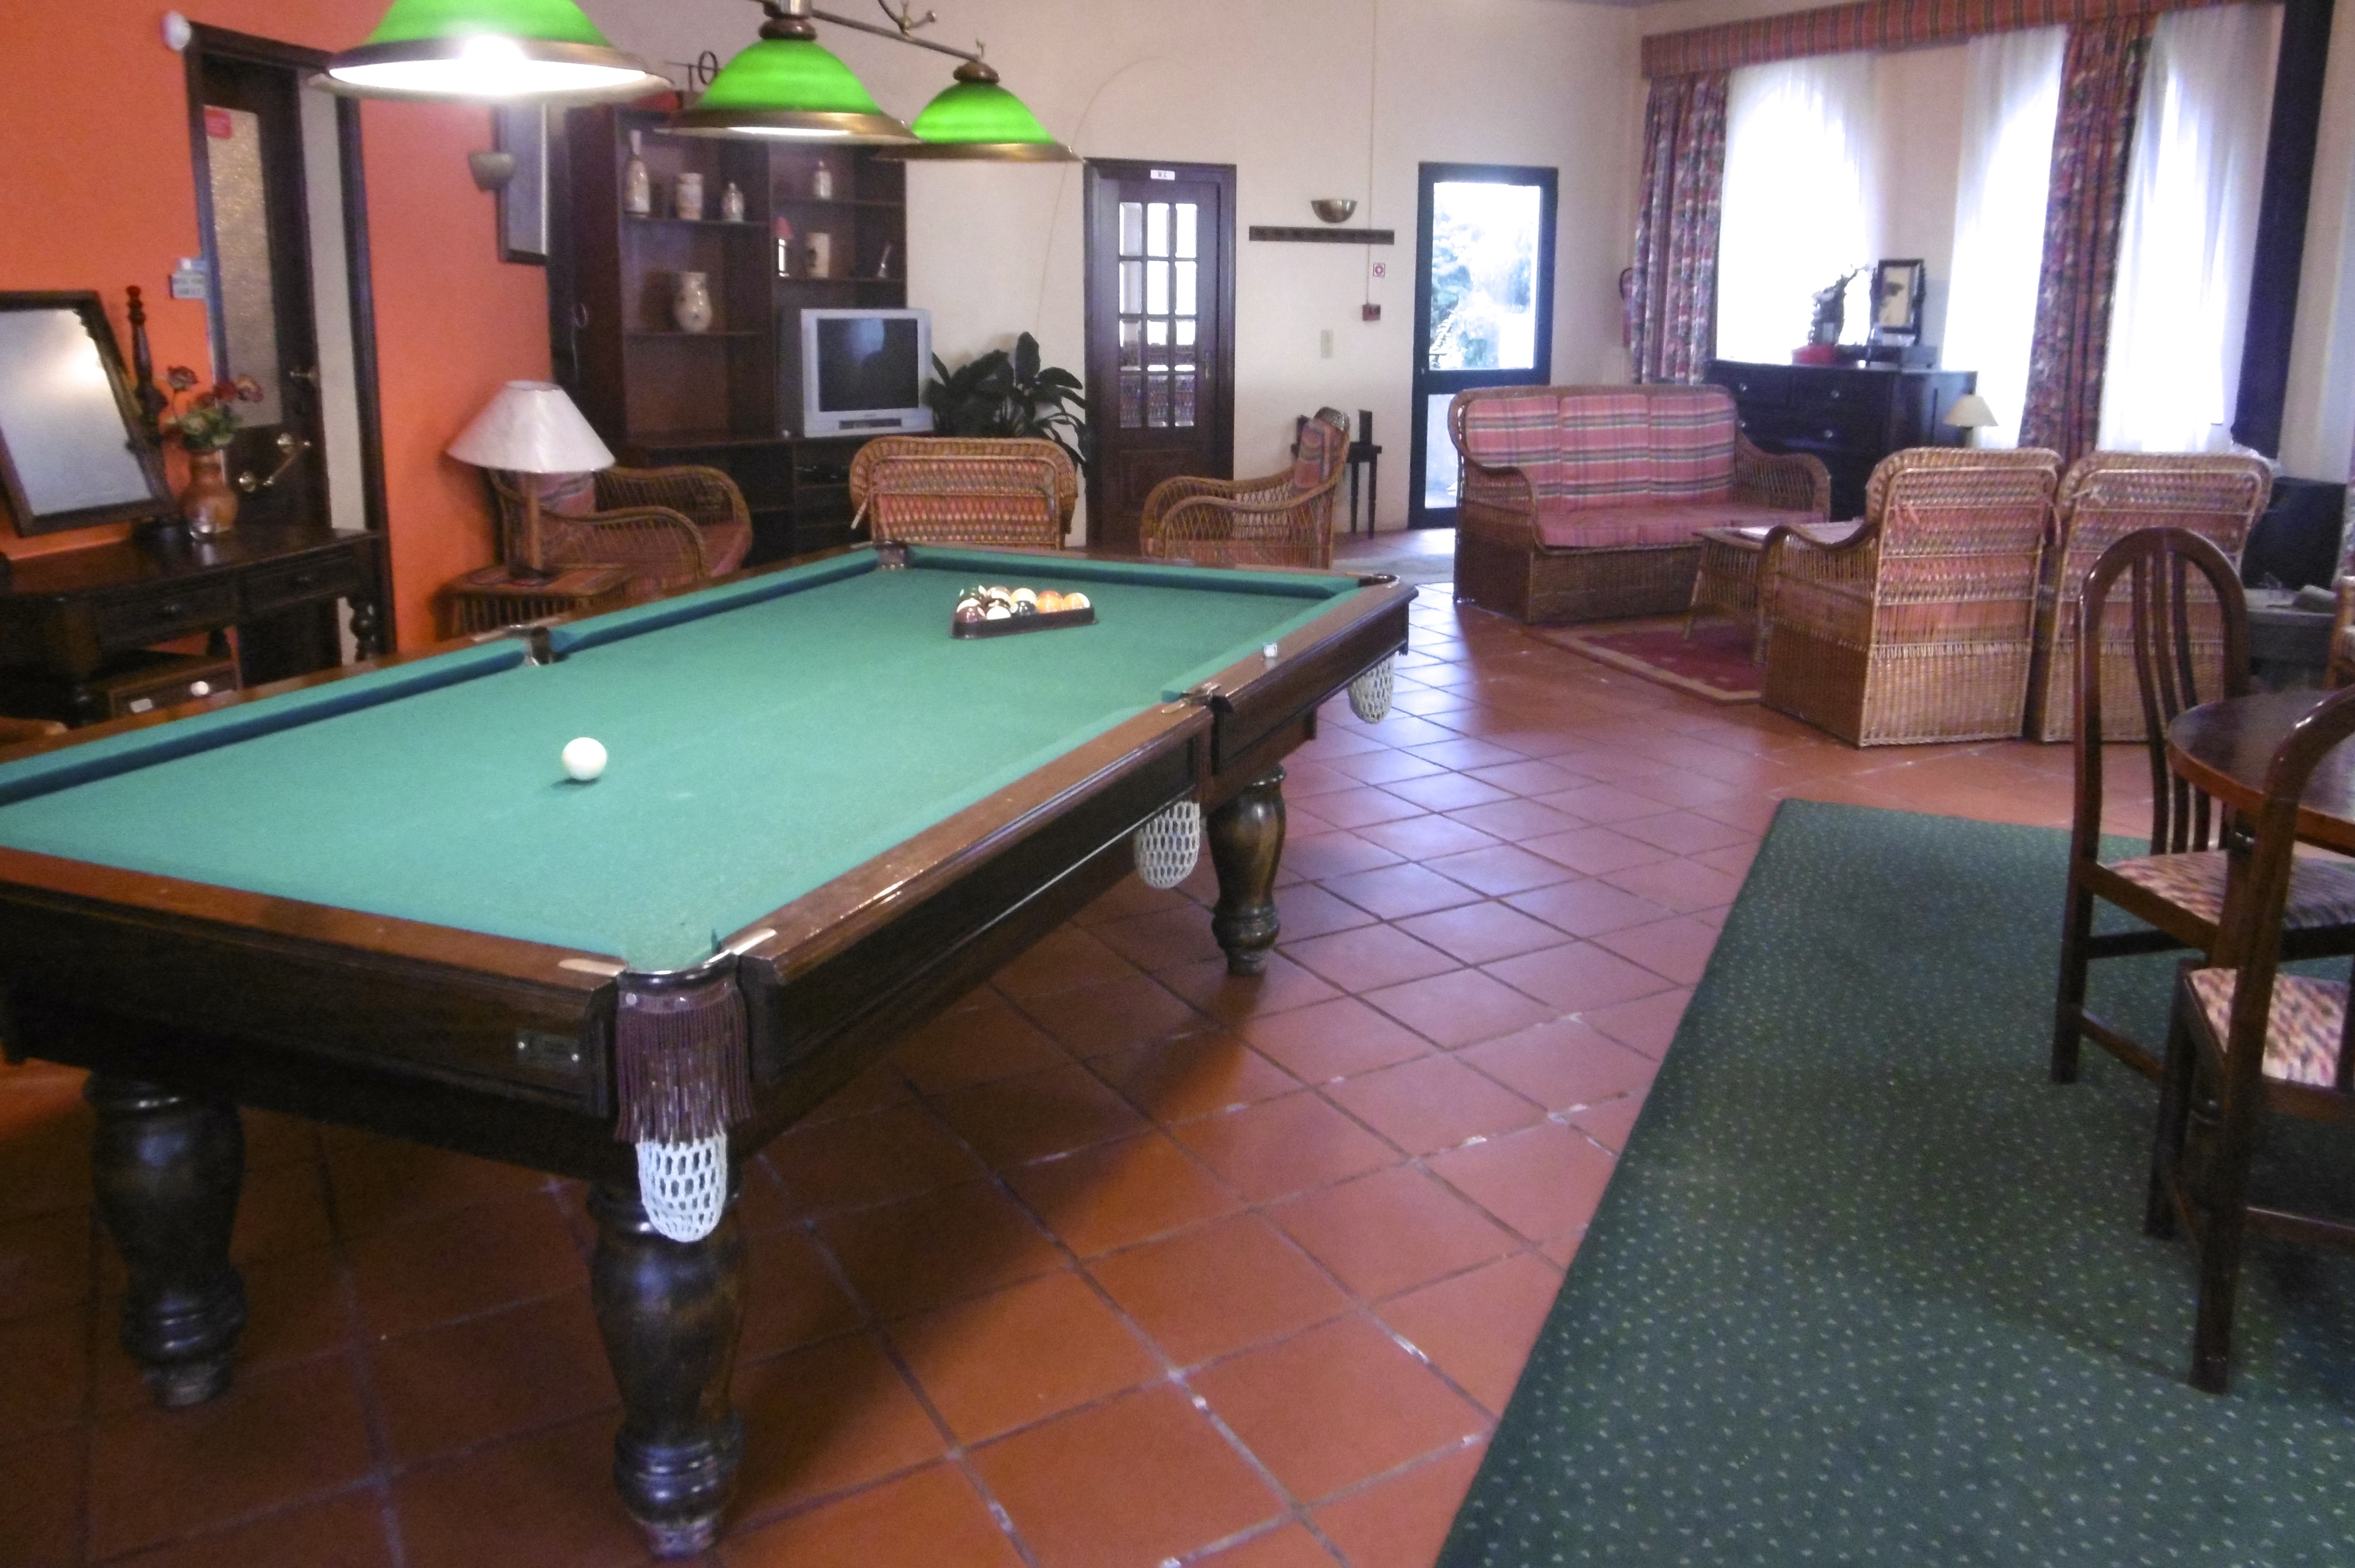 Refurbished Pool Tables Full Size Snooker